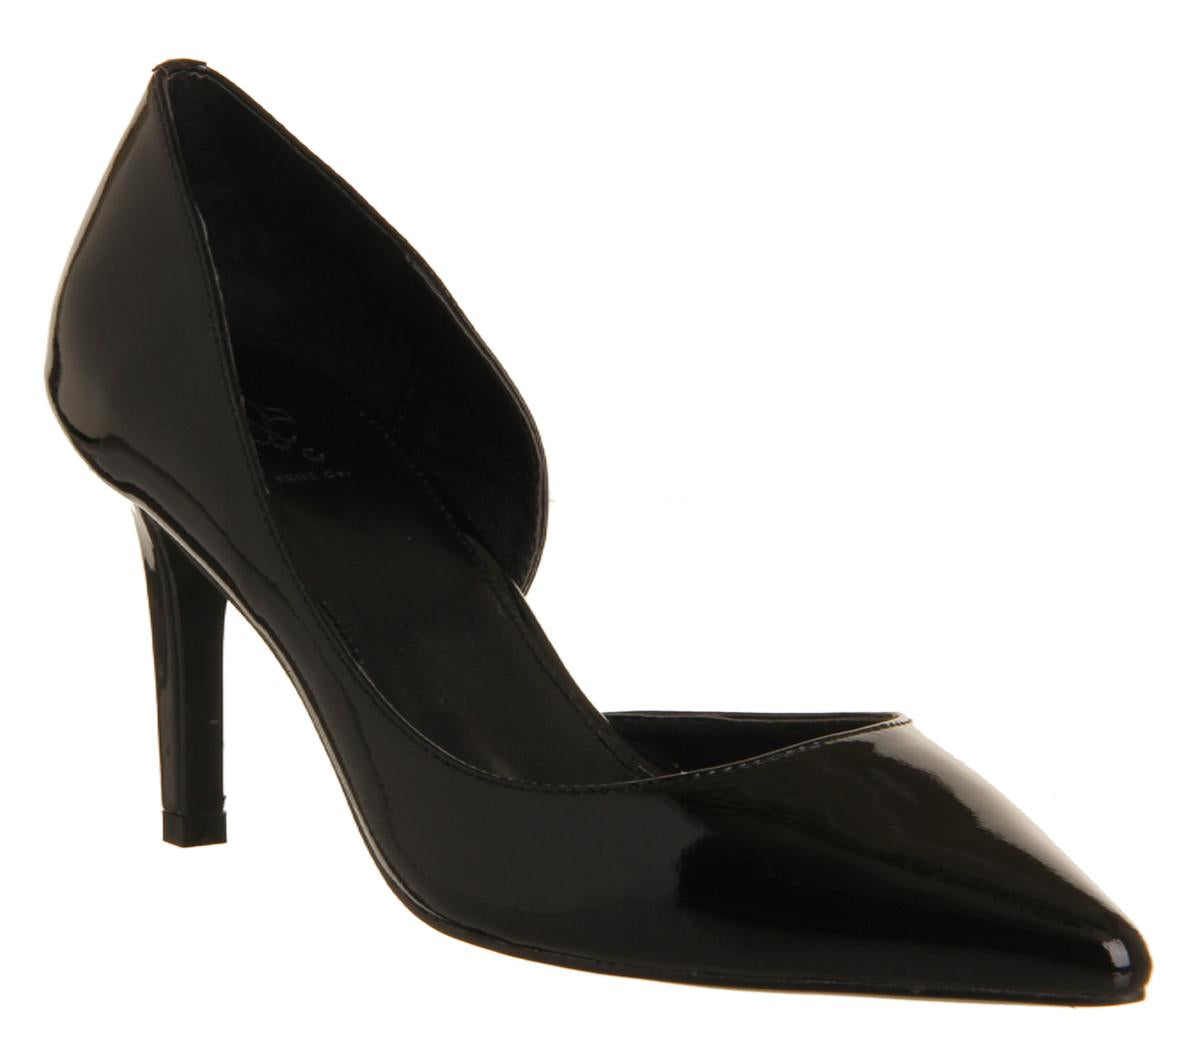 Womens Friis & Co Gisele Pump Black Patent Leather